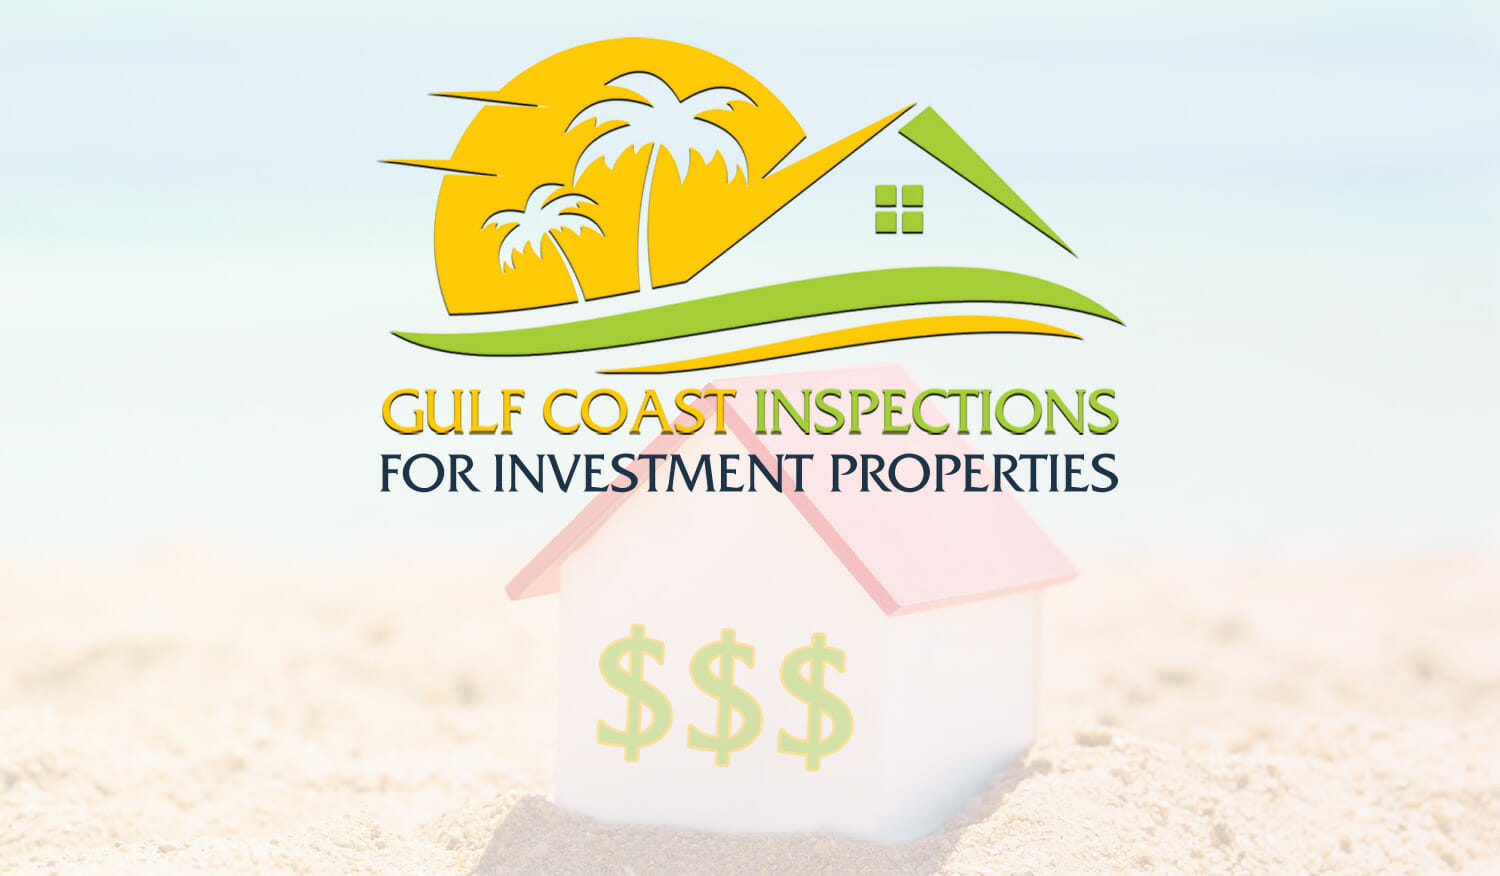 Gulf Coast Inspections for Investment Properties